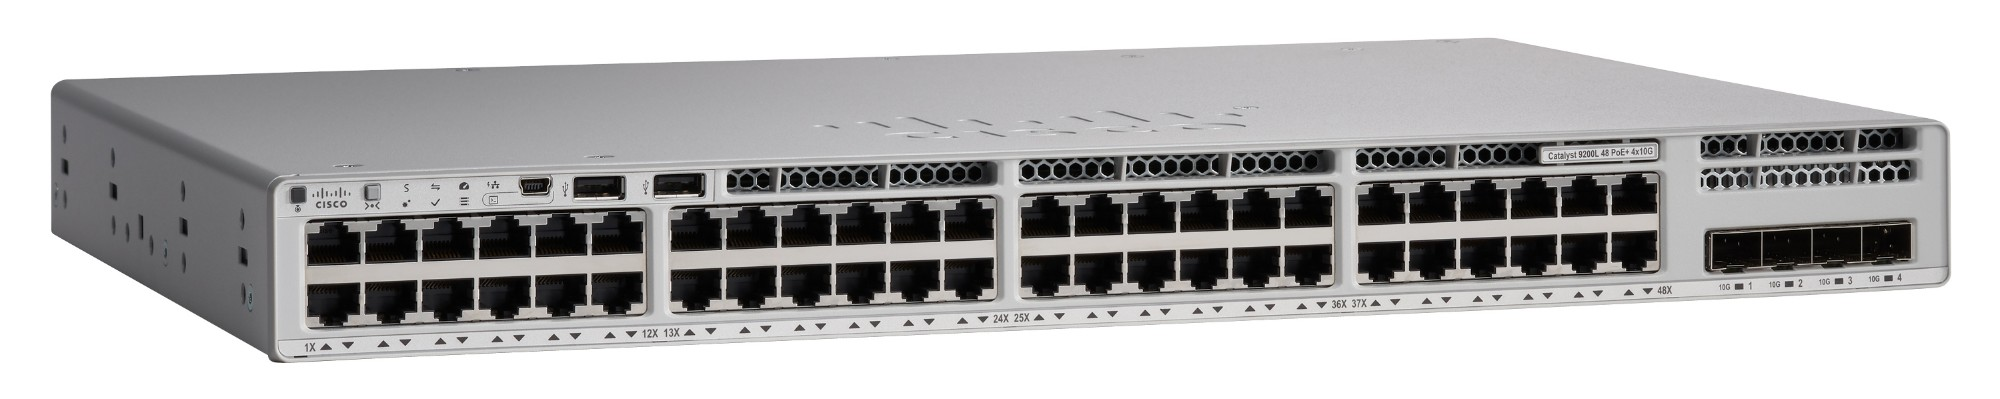 Cisco C9200L-48PXG-4X-E network switch Managed L2/L3 Gigabit Ethernet (10/100/1000) Gray Power over Ethernet (PoE)